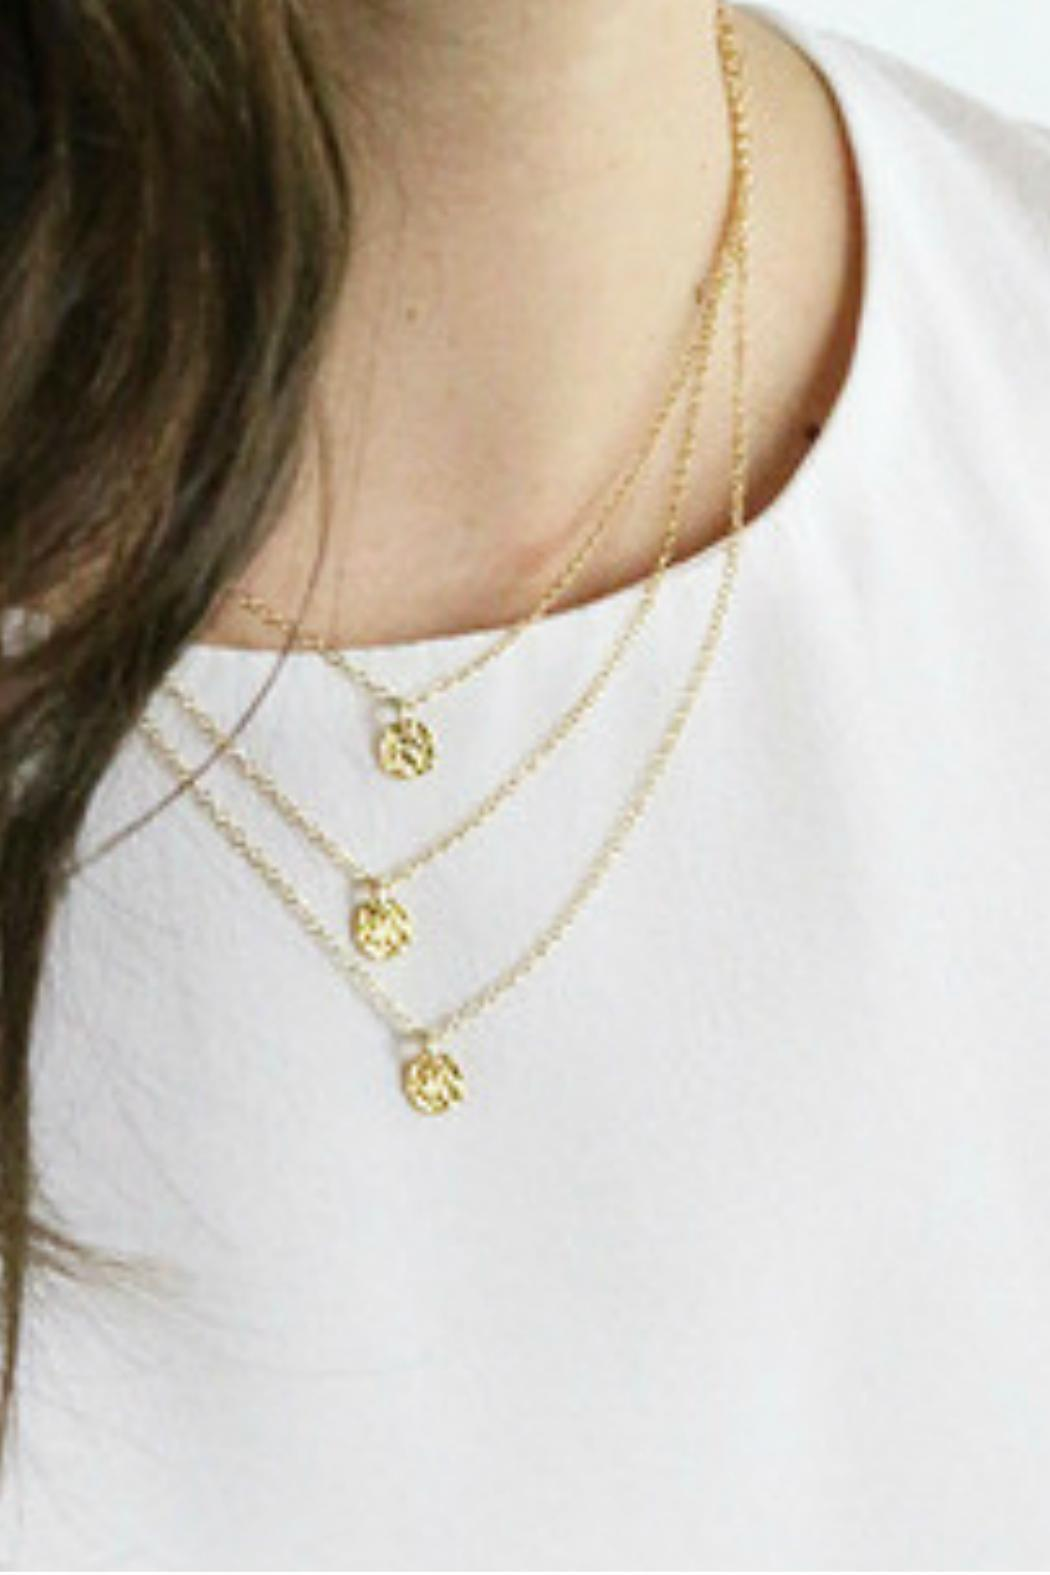 disc lewis ibb necklace at pendant rsp pdp johnlewis online main gold personalised com buyibb john